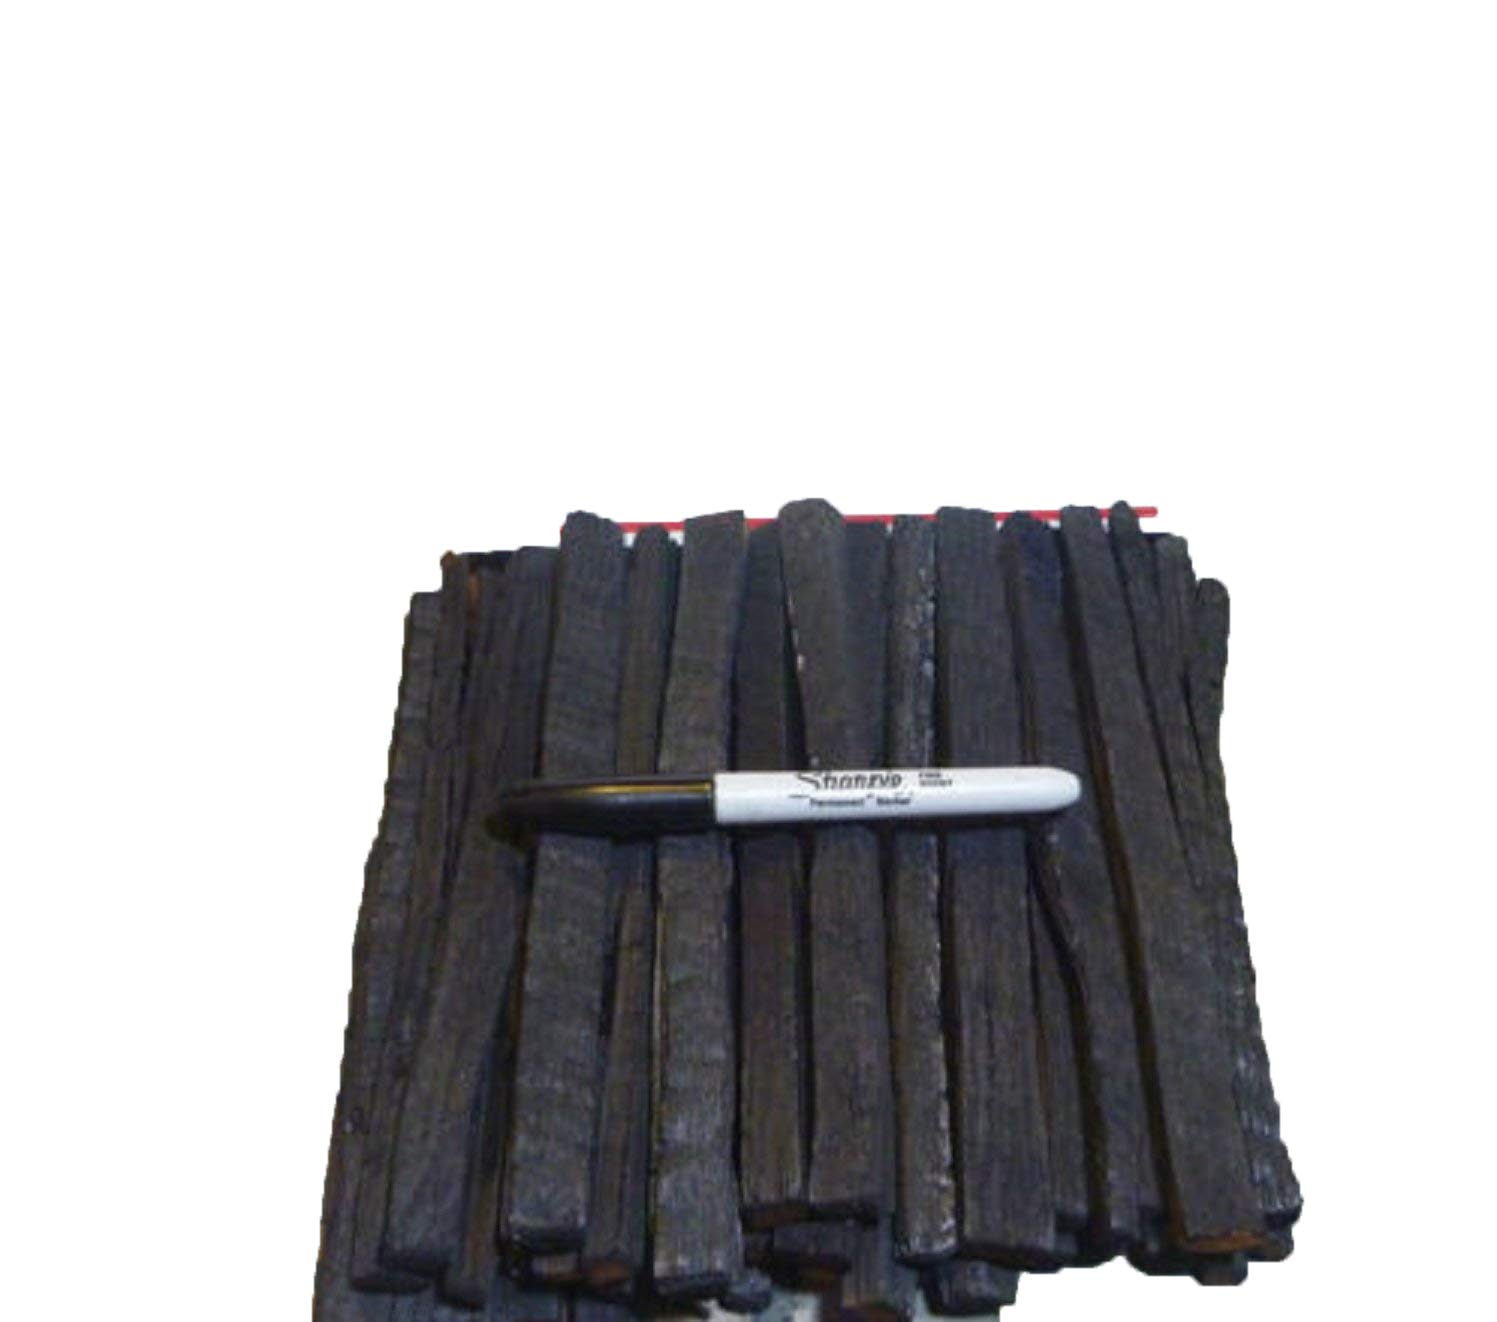 USA Premium Store 1LB Charred White American Oak Chips Sticks Distilling Moonshine Beer Wine